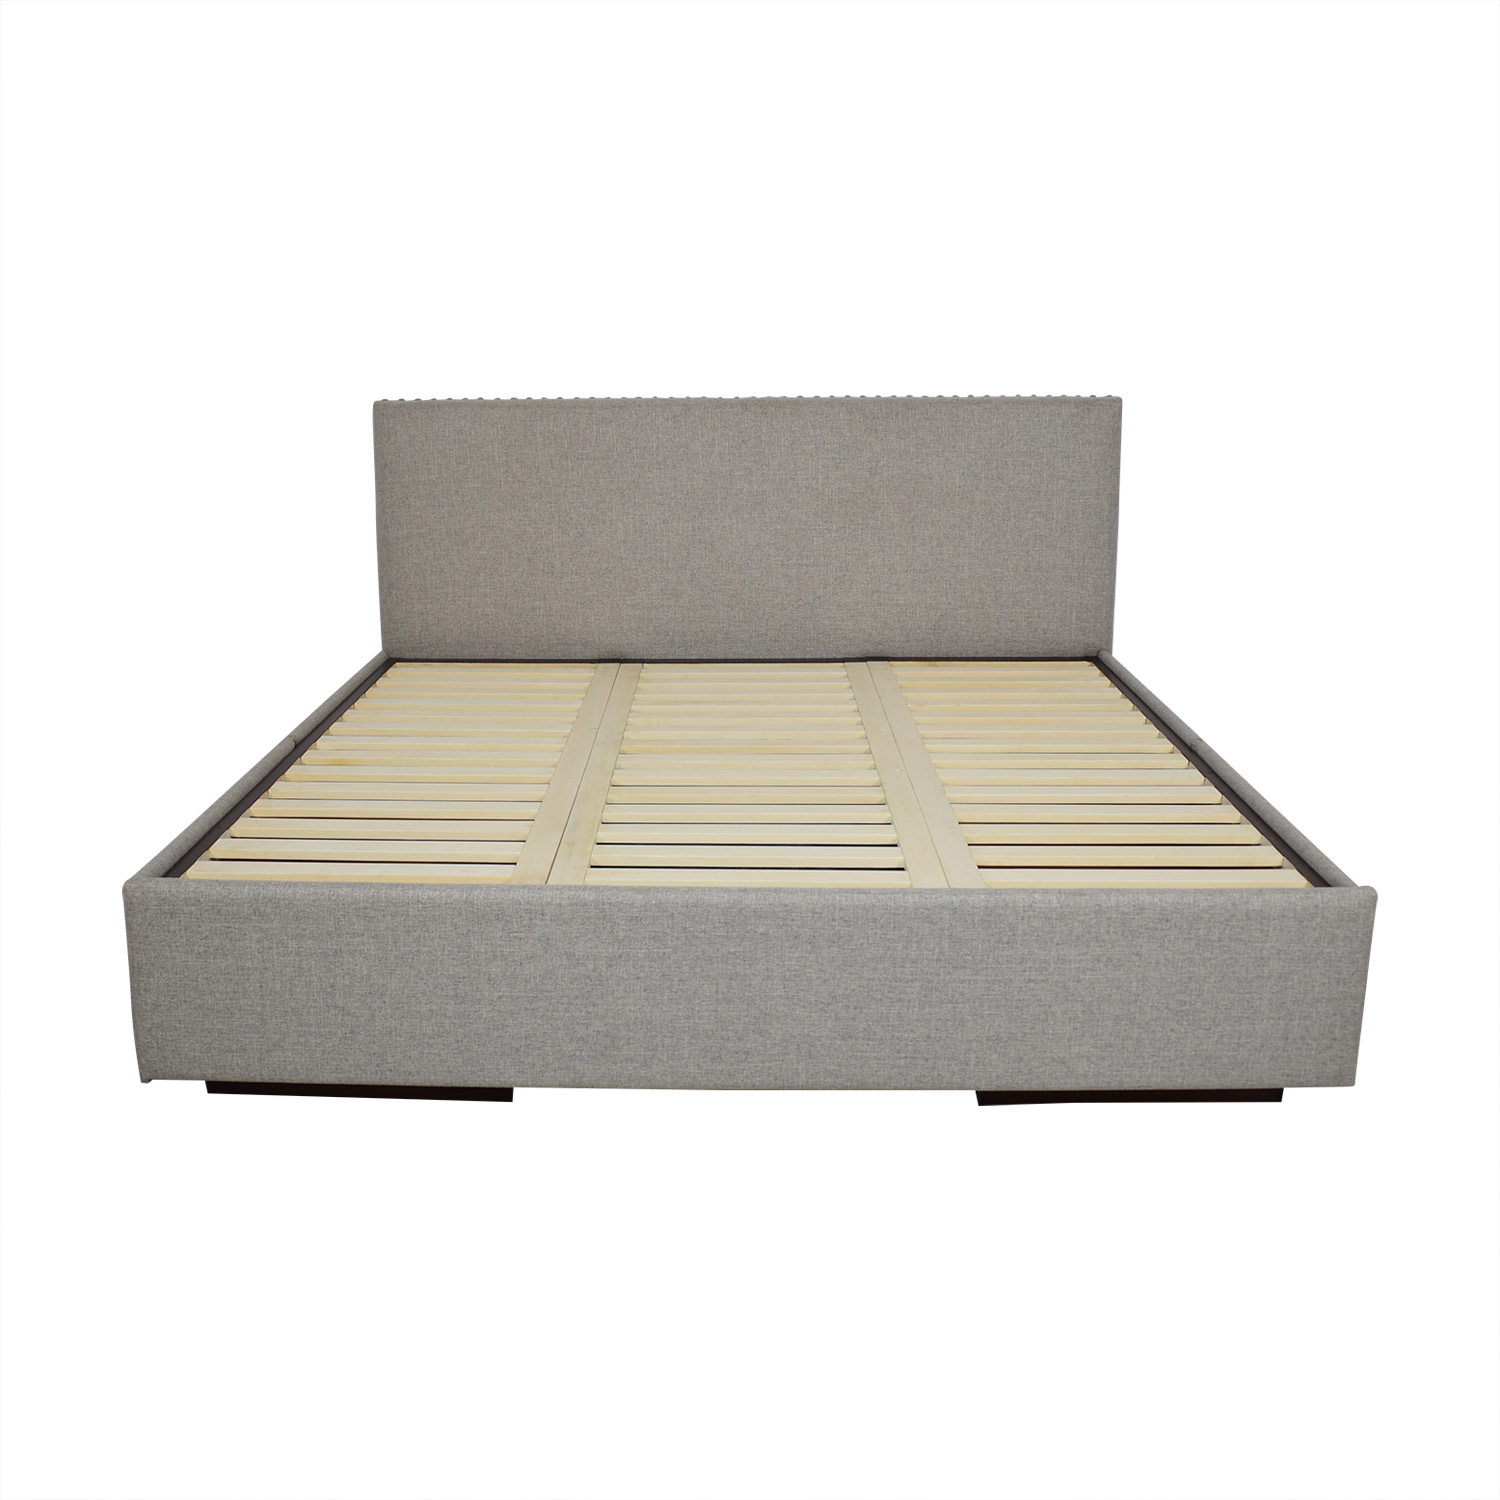 Pottery Barn Raleigh King Storage Bed / Bed Frames